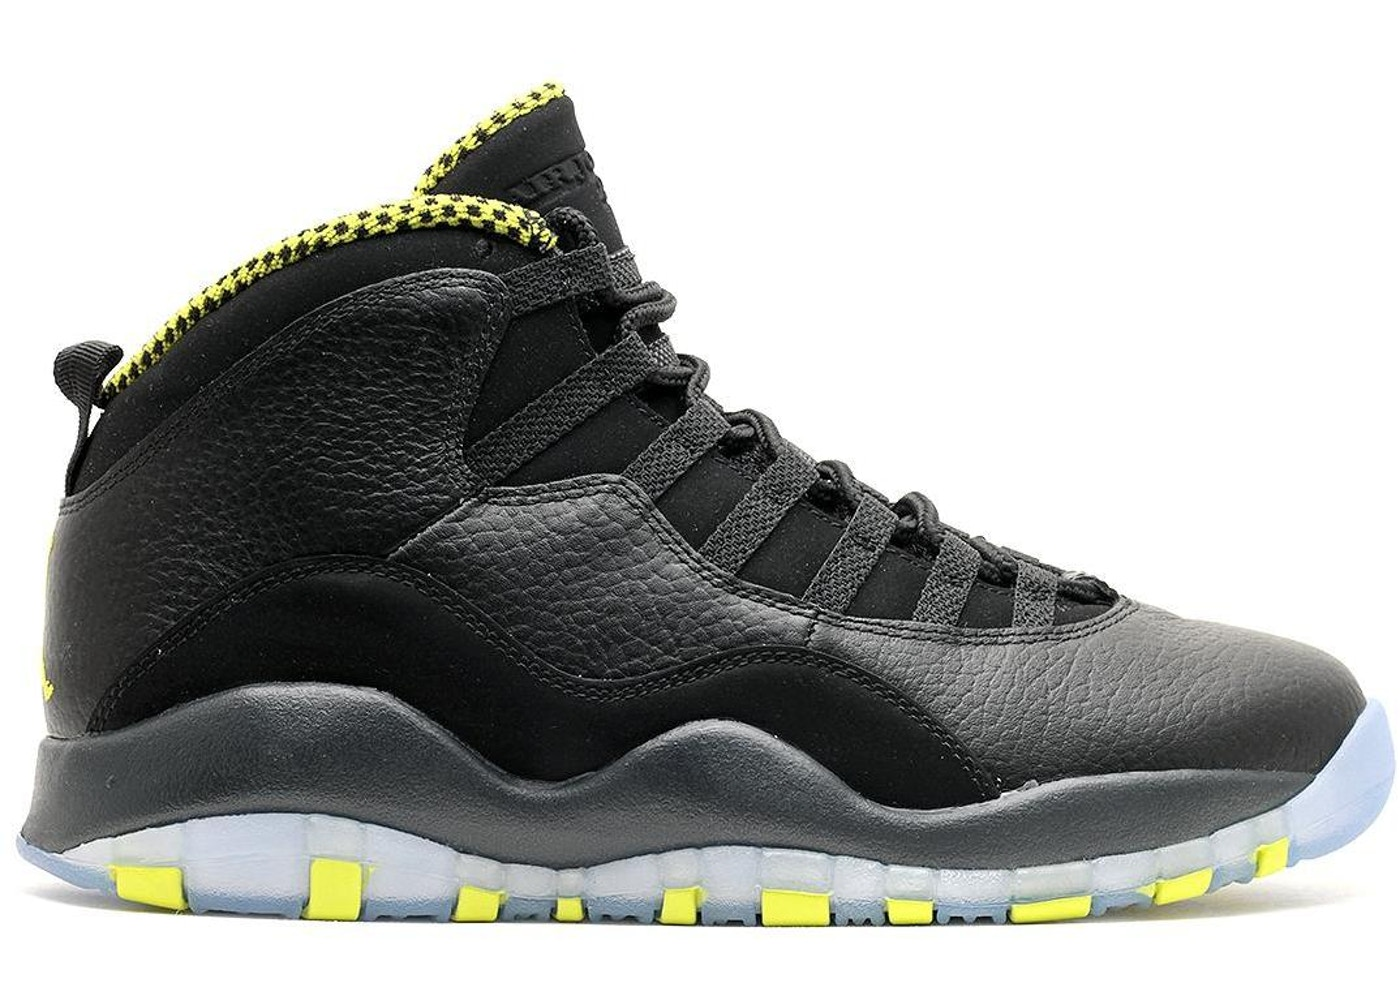 on sale 6deb7 10732 Jordan 10 Retro Venom Green